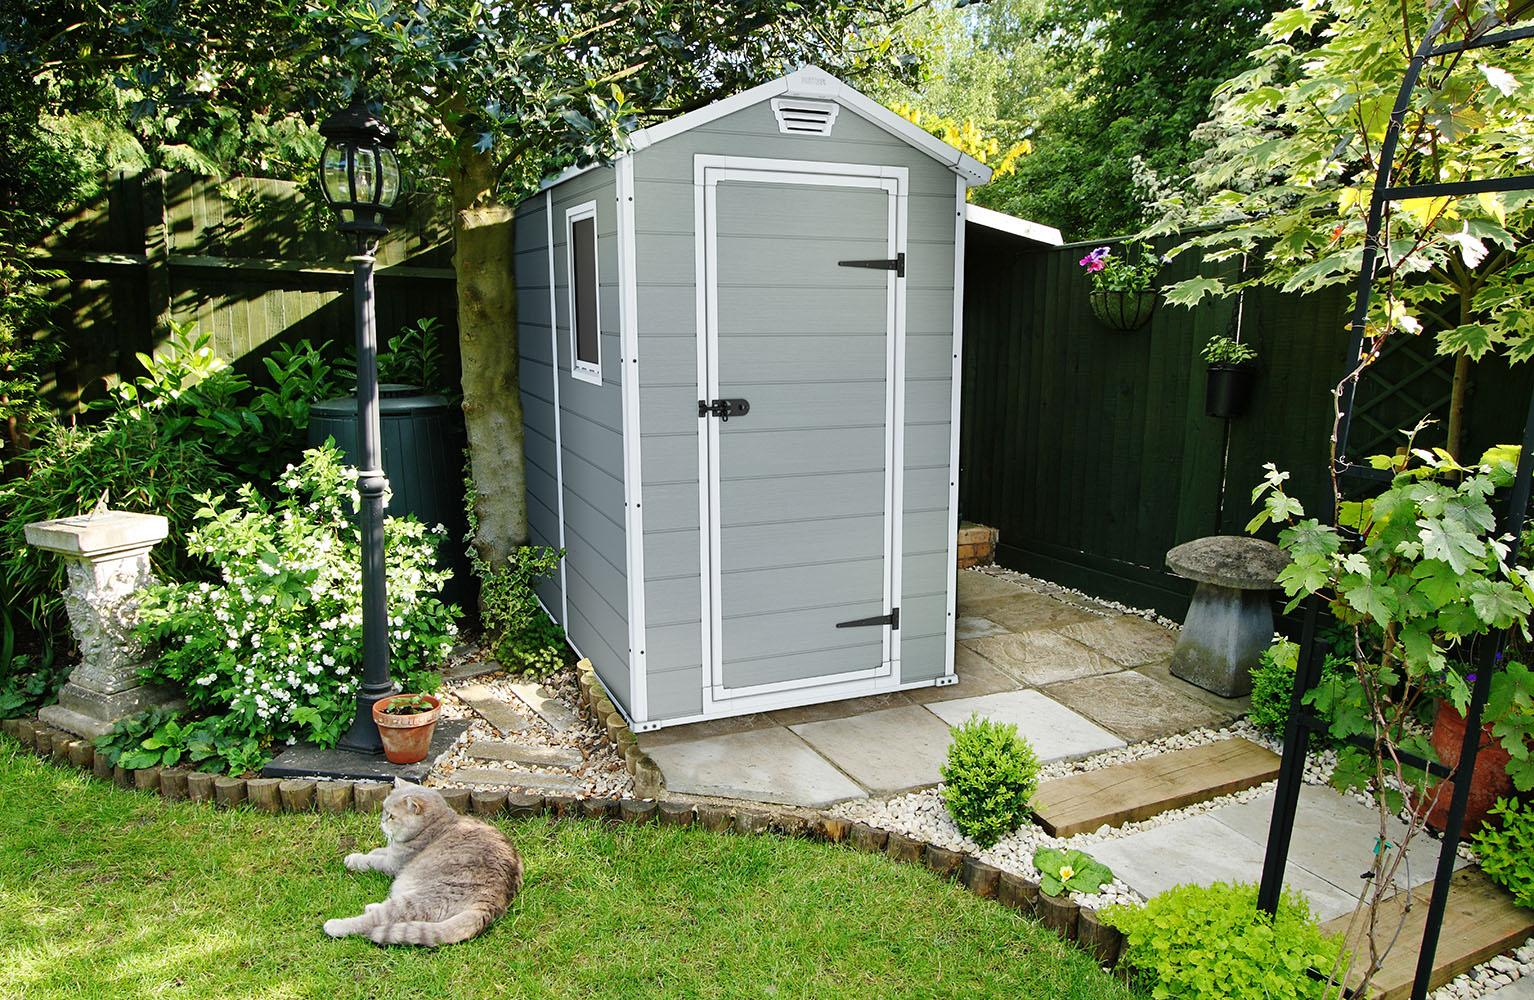 Amazon.com : KETER Manor 4x6 Resin Outdoor Storage Shed ...